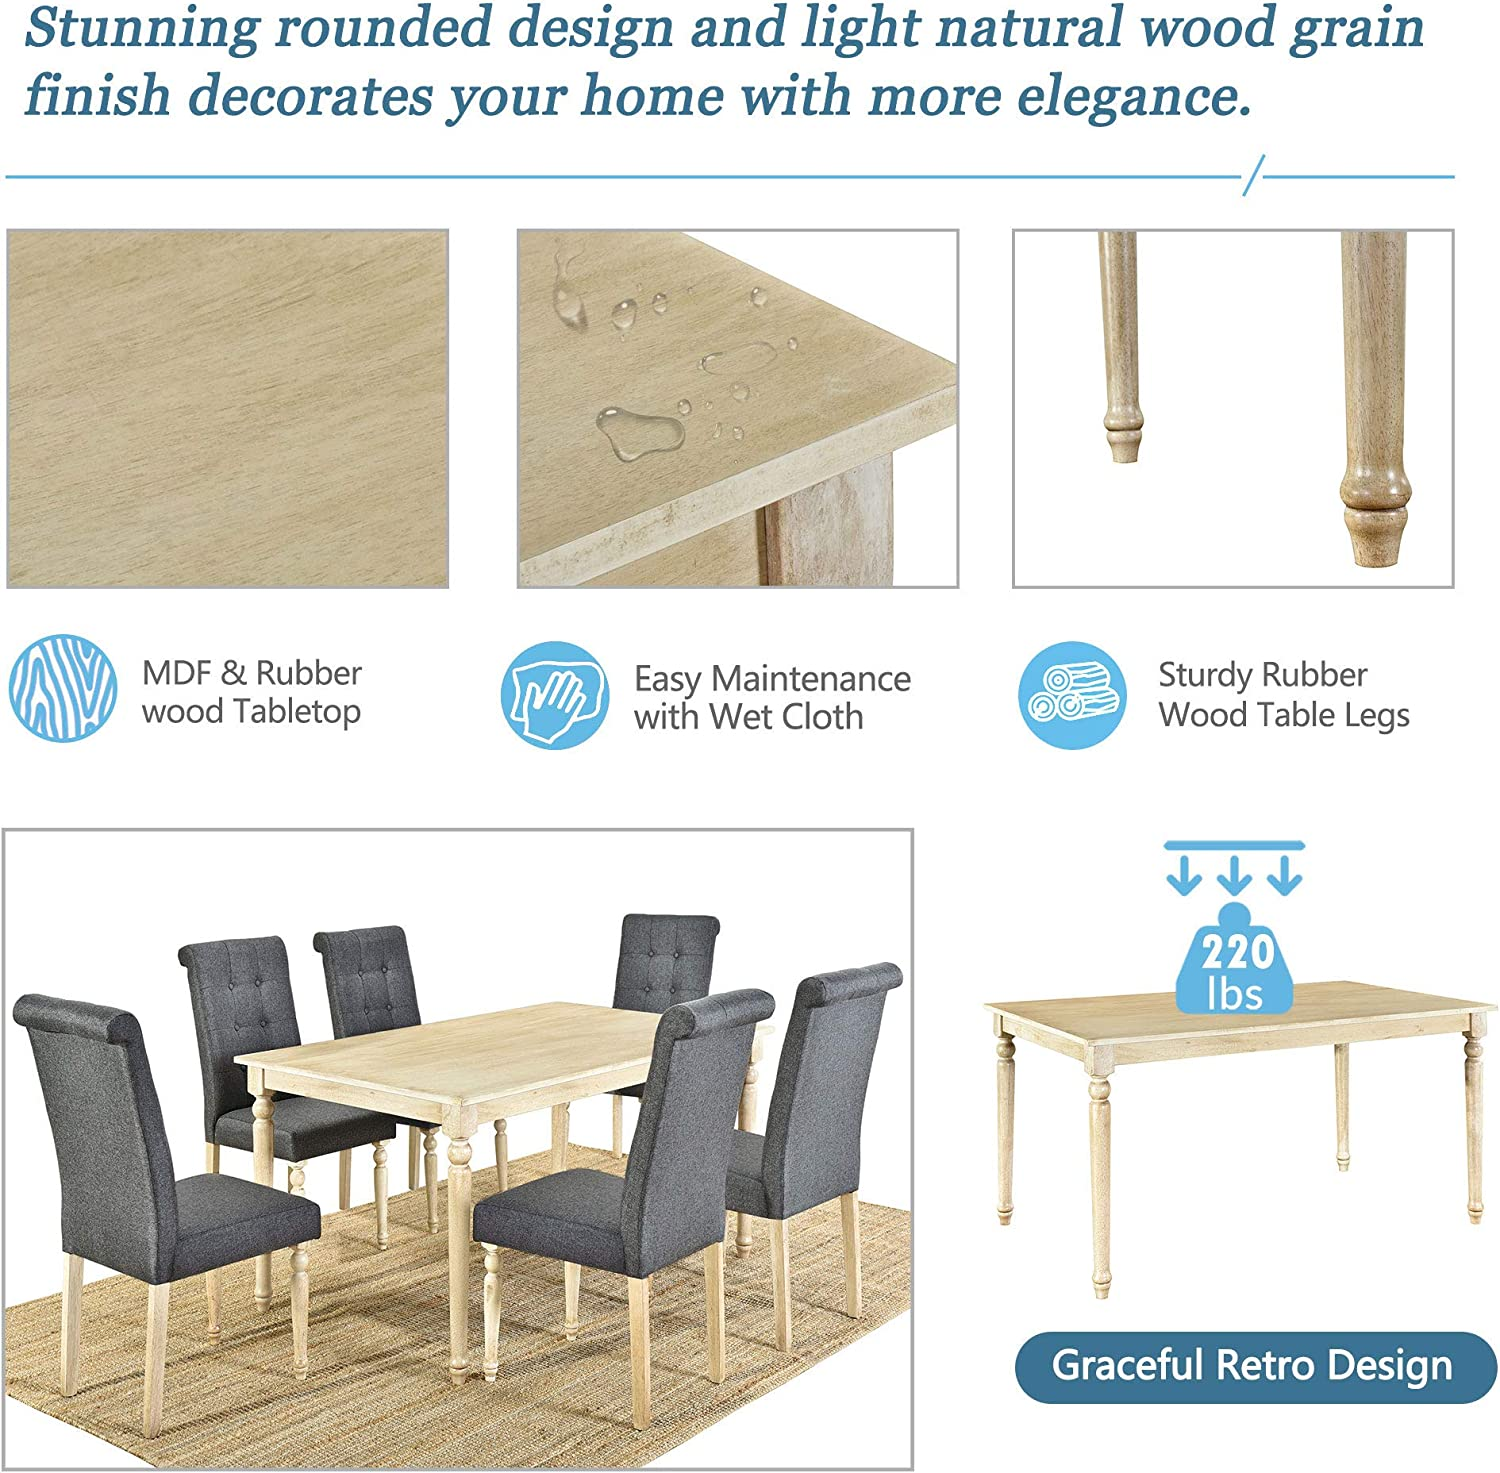 LZ LEISURE ZONE Dining Table Set 9 Piece Kitchen Table Set Wood ...